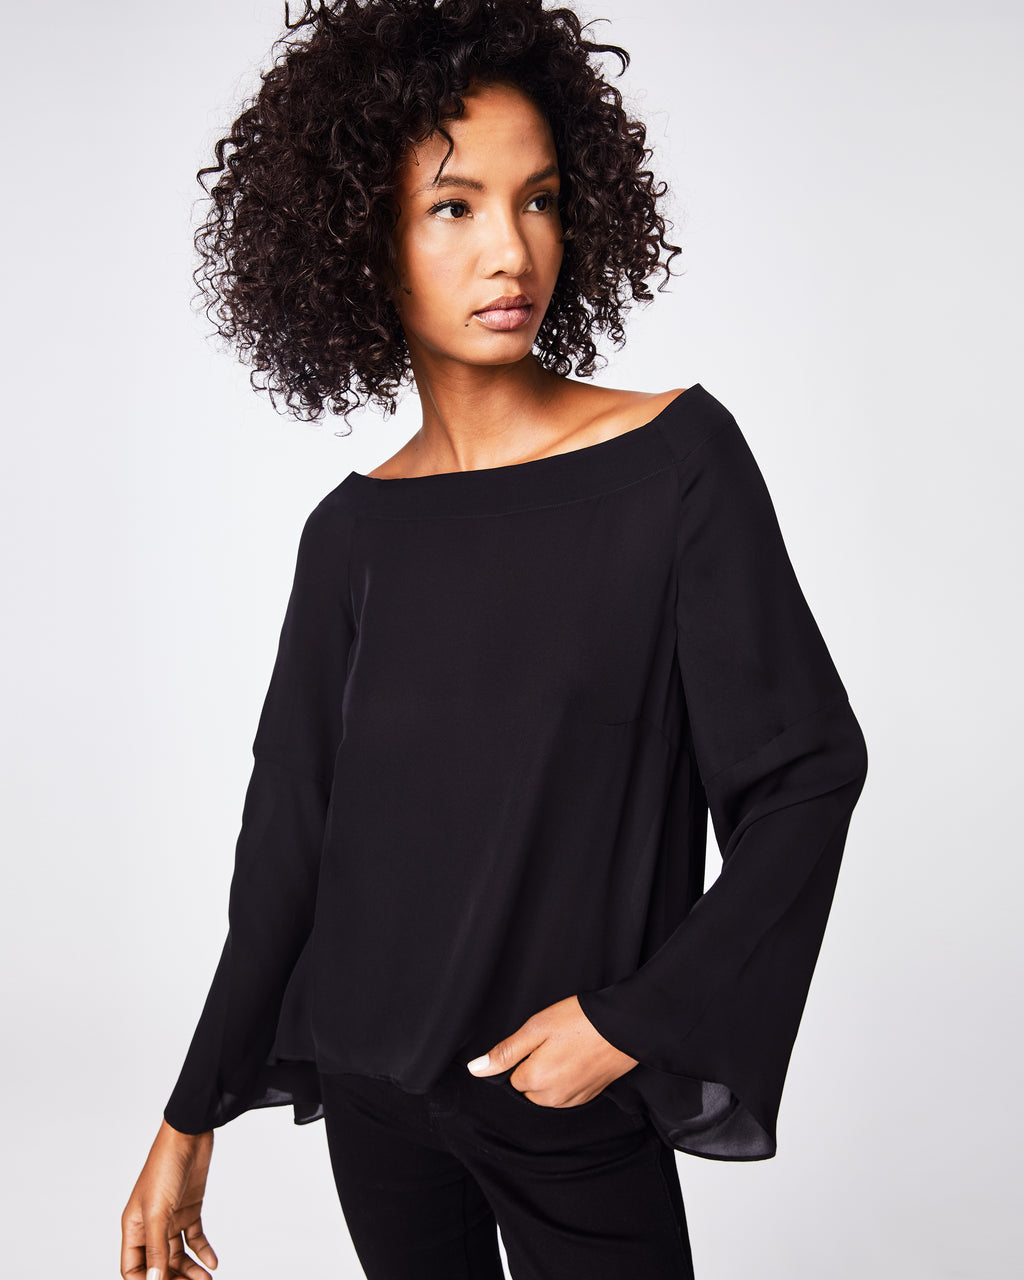 BB10212 - SOLID SILK BLEND OFF THE SHOULDER BLOUSE - tops - blouses - A conservative cut meets a note of flirty. This long sleeve top is structured by a wide neckline that flows into the airy sleeves and hem. It can be paired alone with denim or elevated with a leather jacket.